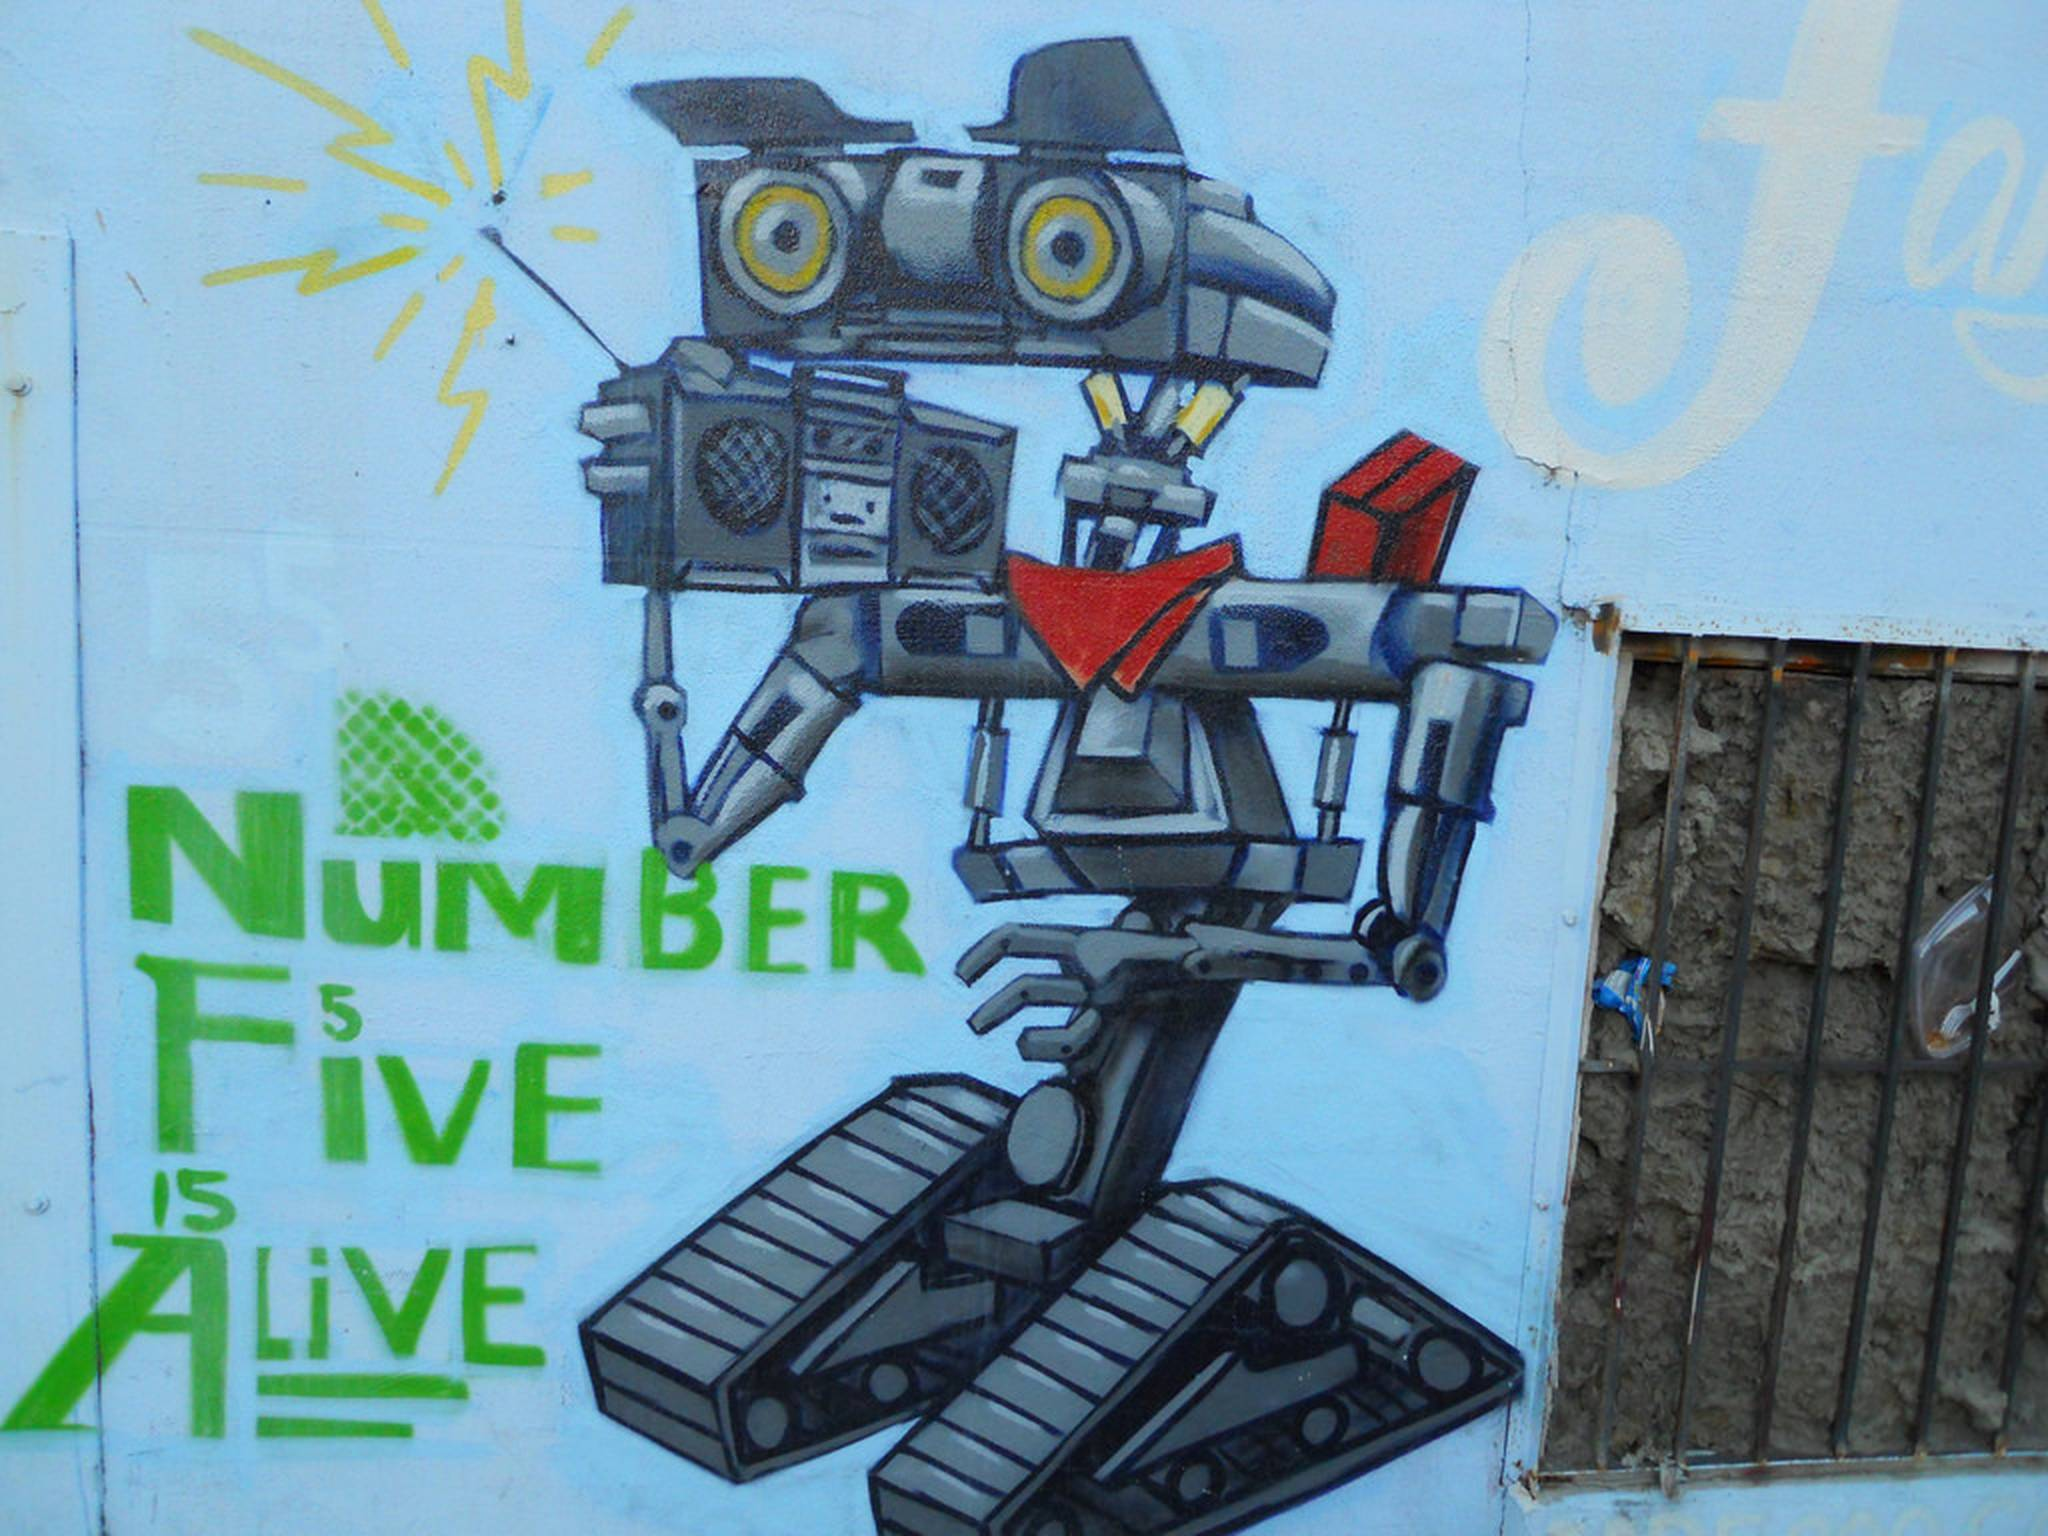 Painting or graffiti of Johnny 5